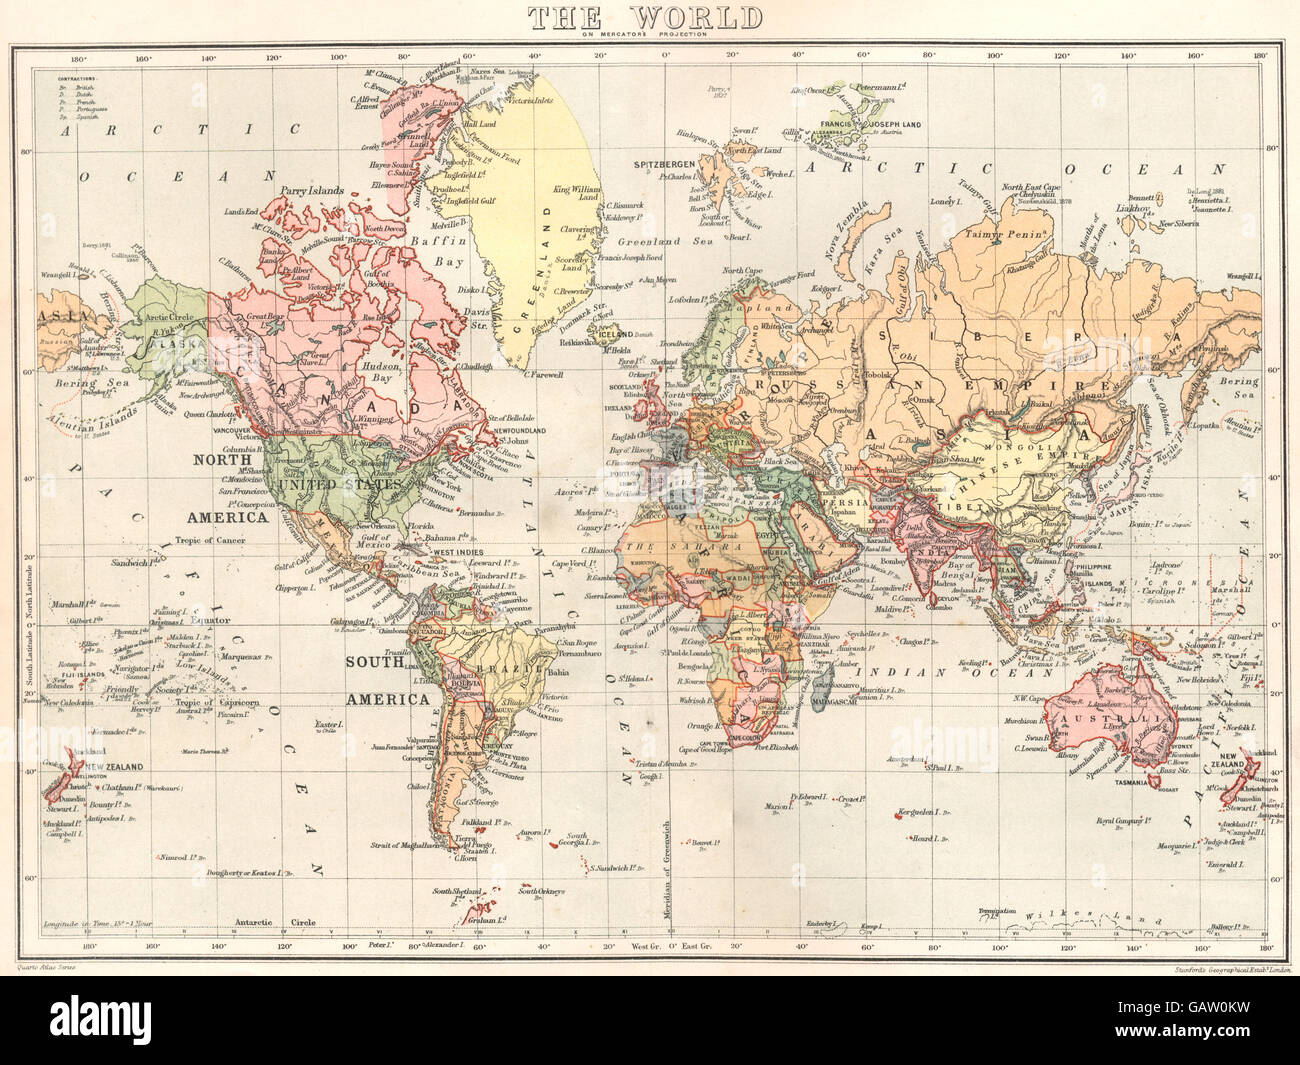 WORLD: The World. Stanford, 1892 antique map Stock Photo